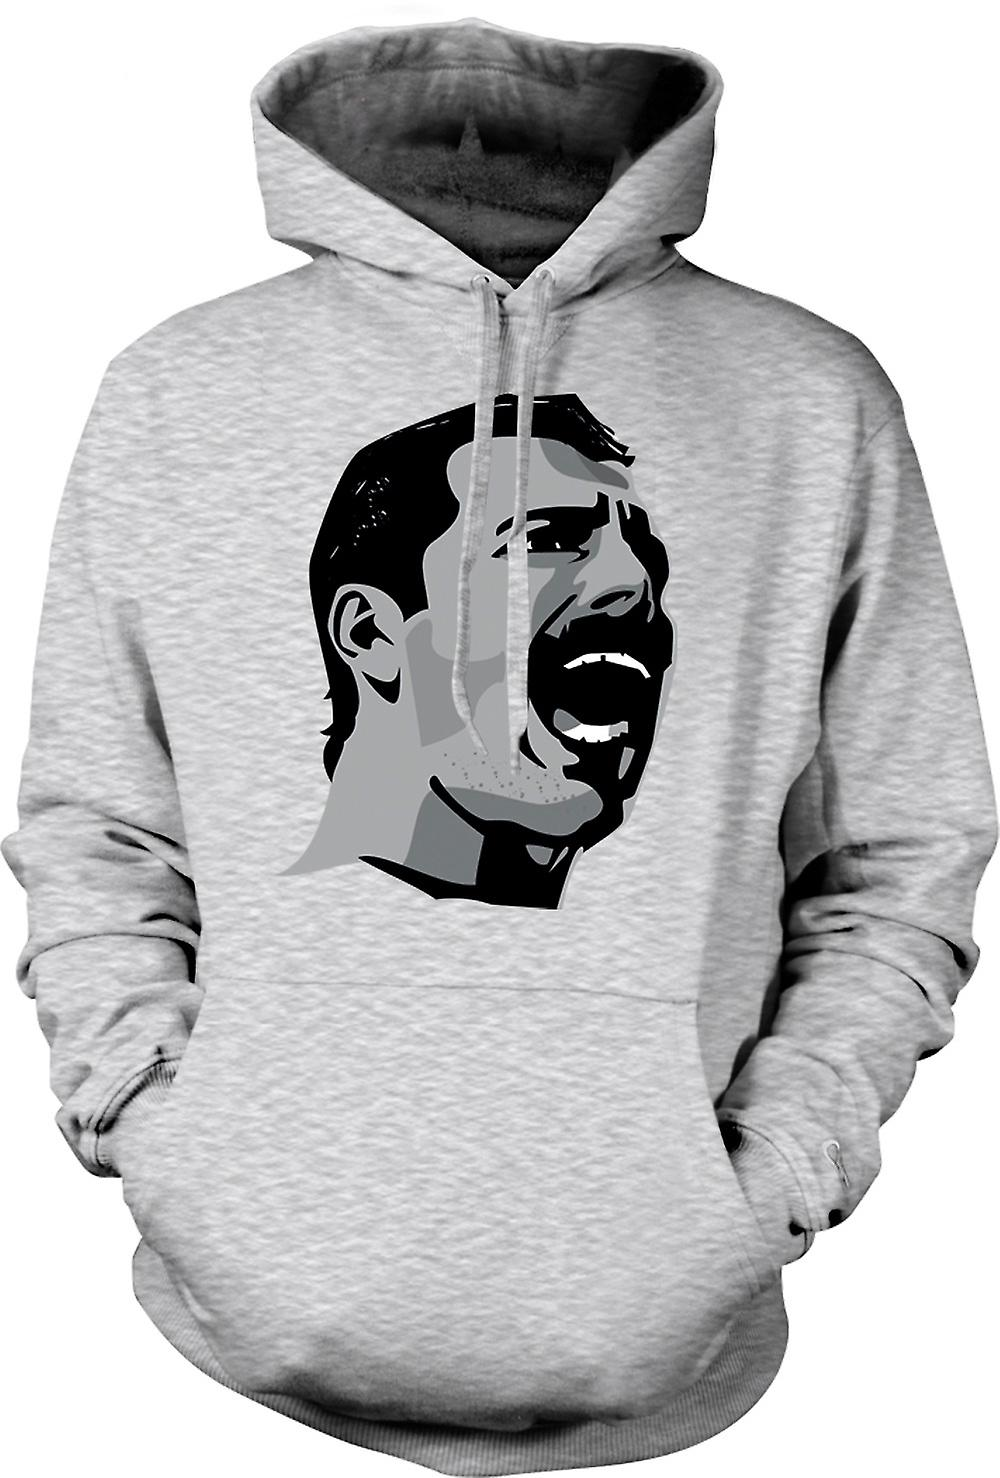 Mens Hoodie - Freddie Mercury Pop-Art Portrait